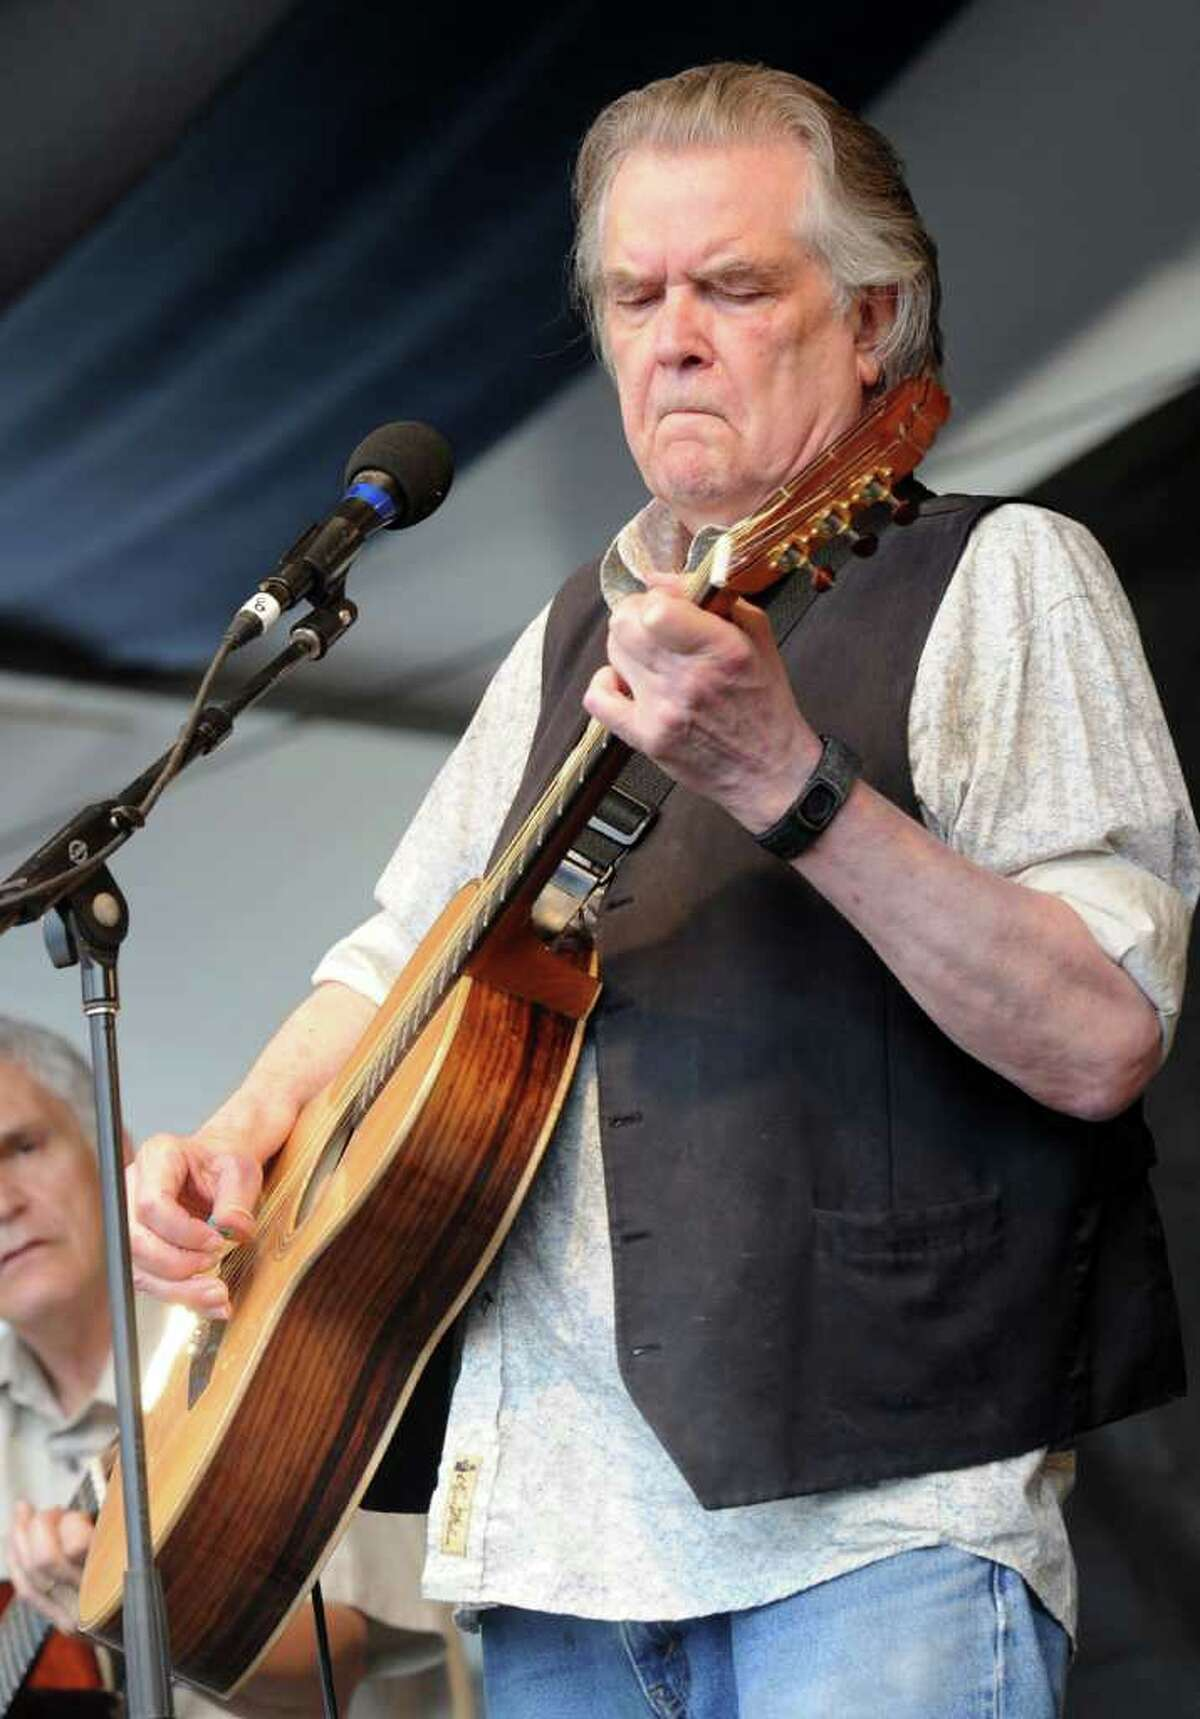 A who's who of singers took part in a project paying tribute to singer Guy Clark.